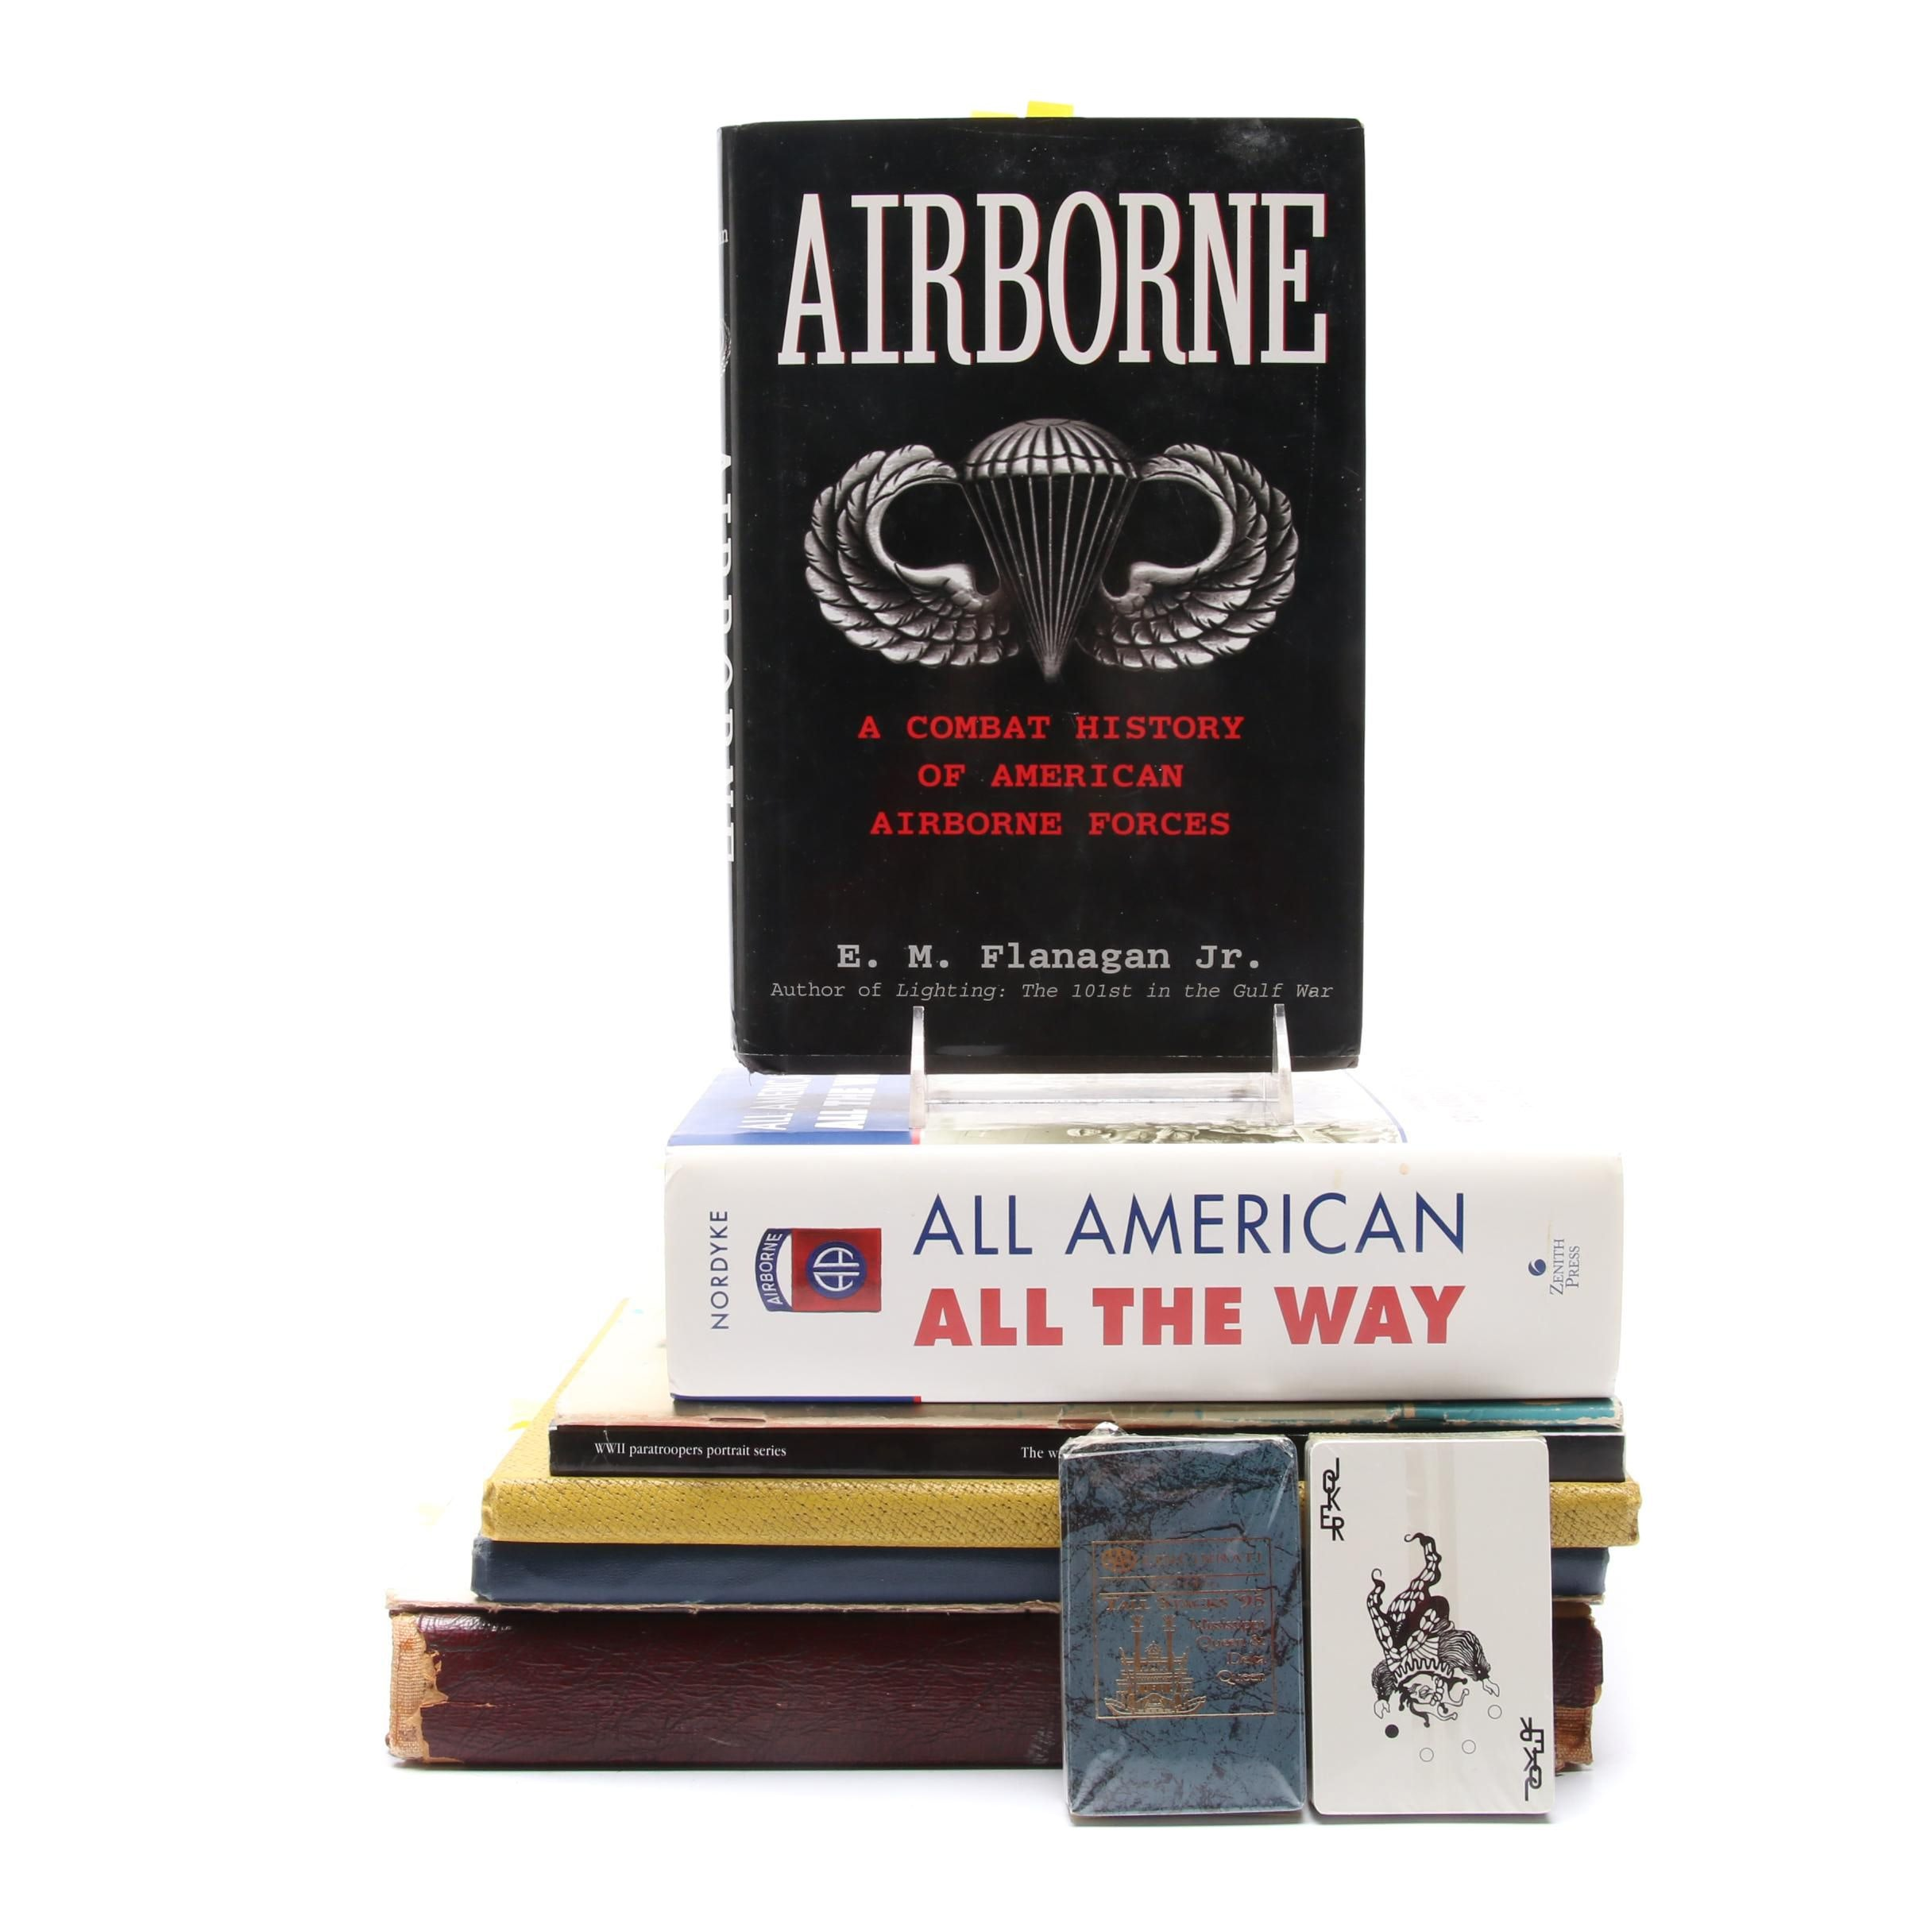 Books on the History of Airborne Forces